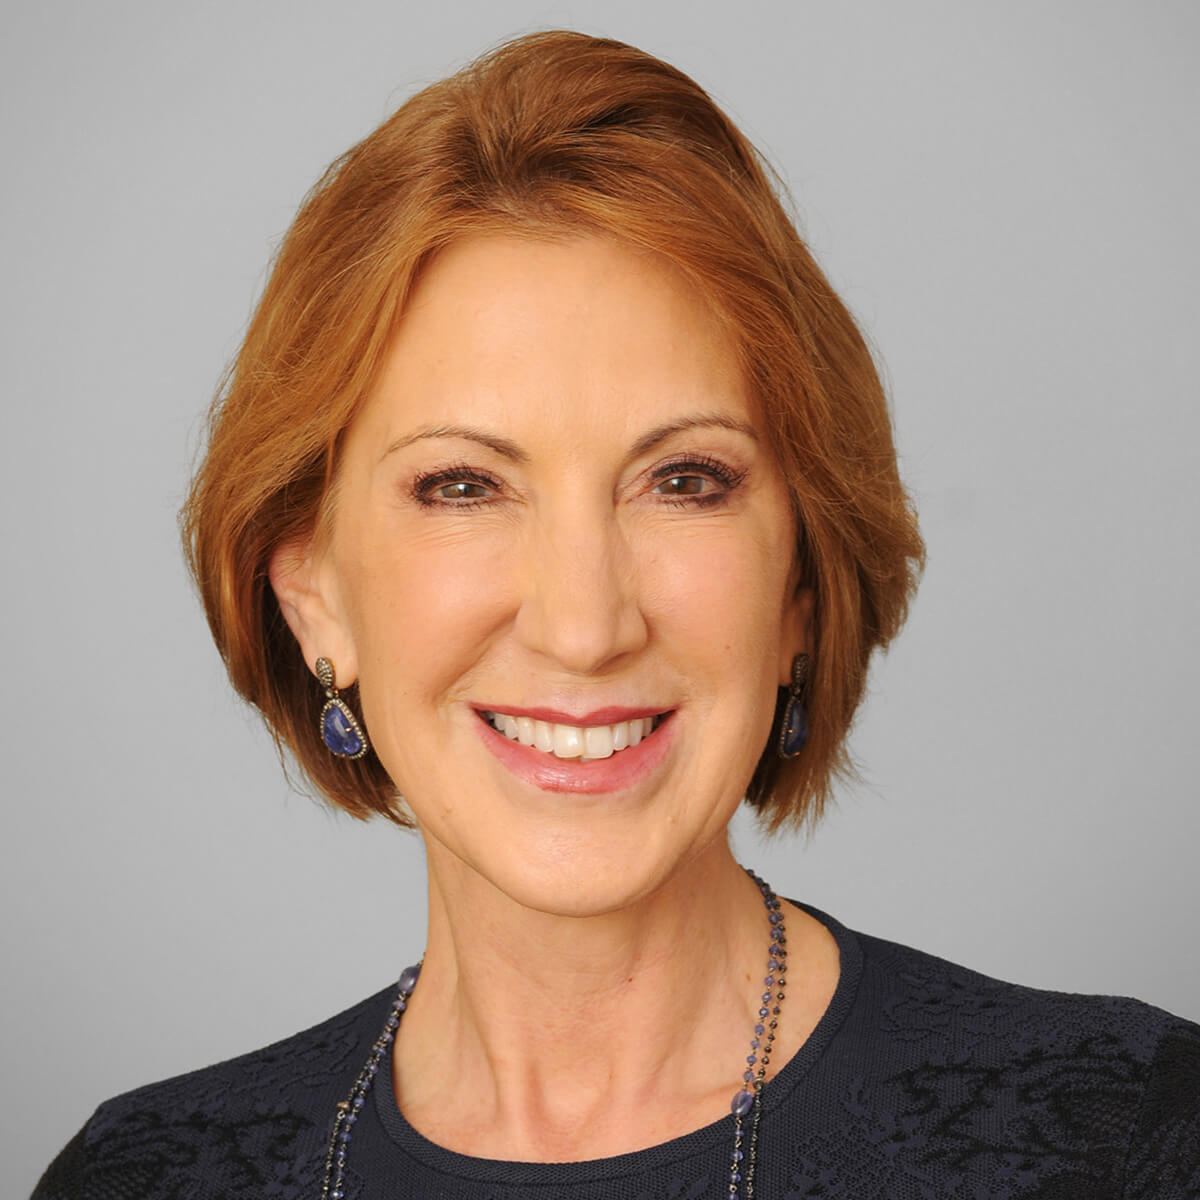 Image of Carly Fiorina